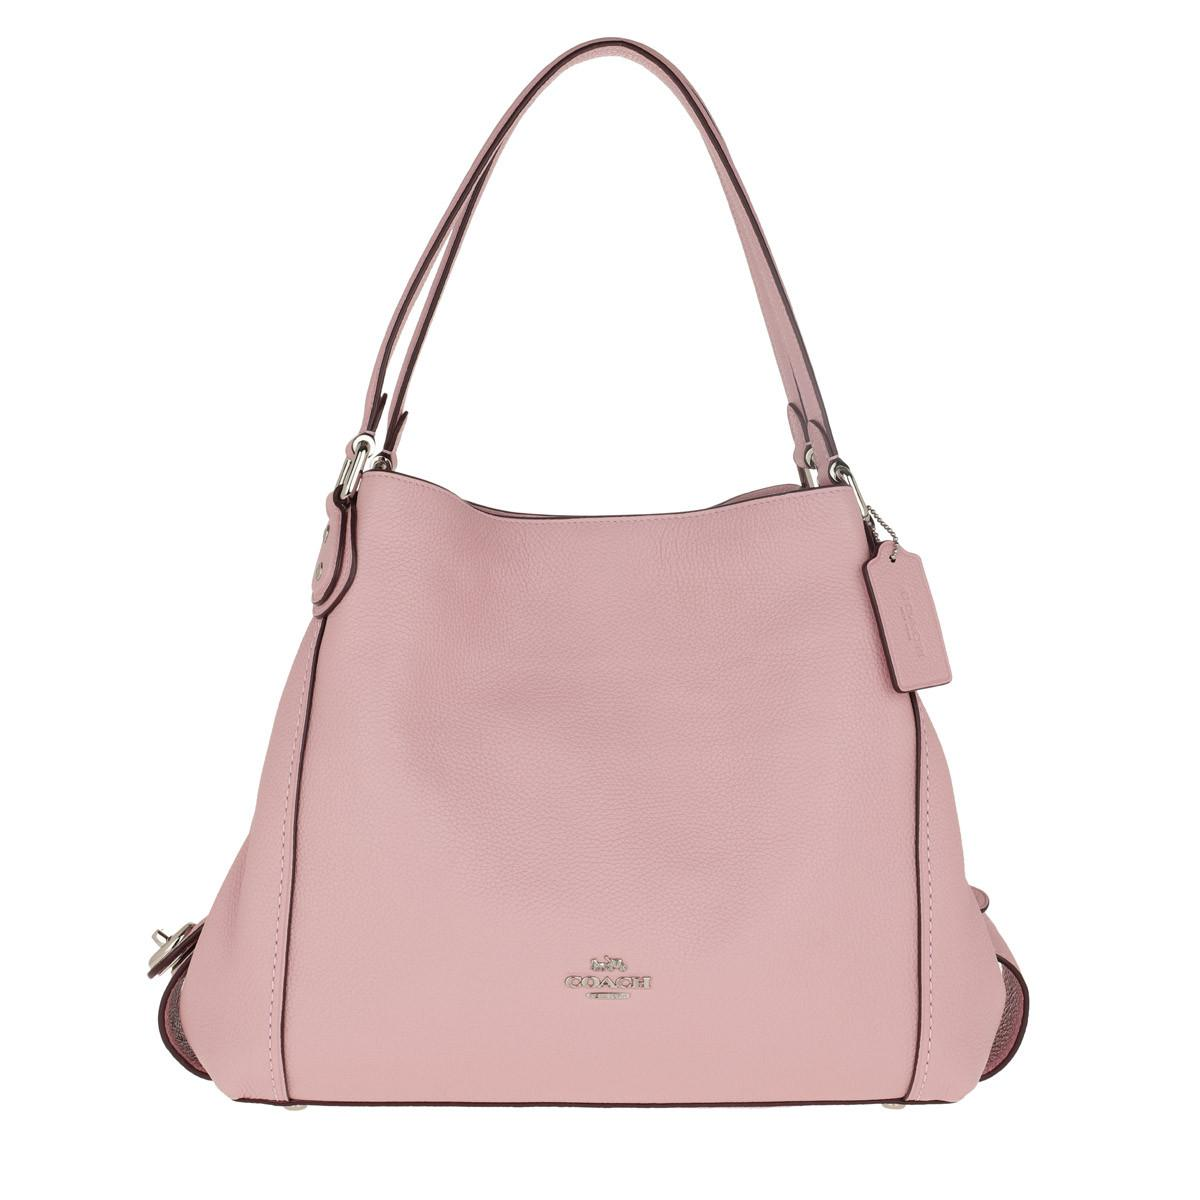 COACH Polished Pebble Leather Edie 31 Shoulder Bag Pink in Pink - Lyst b697a71d99f3d